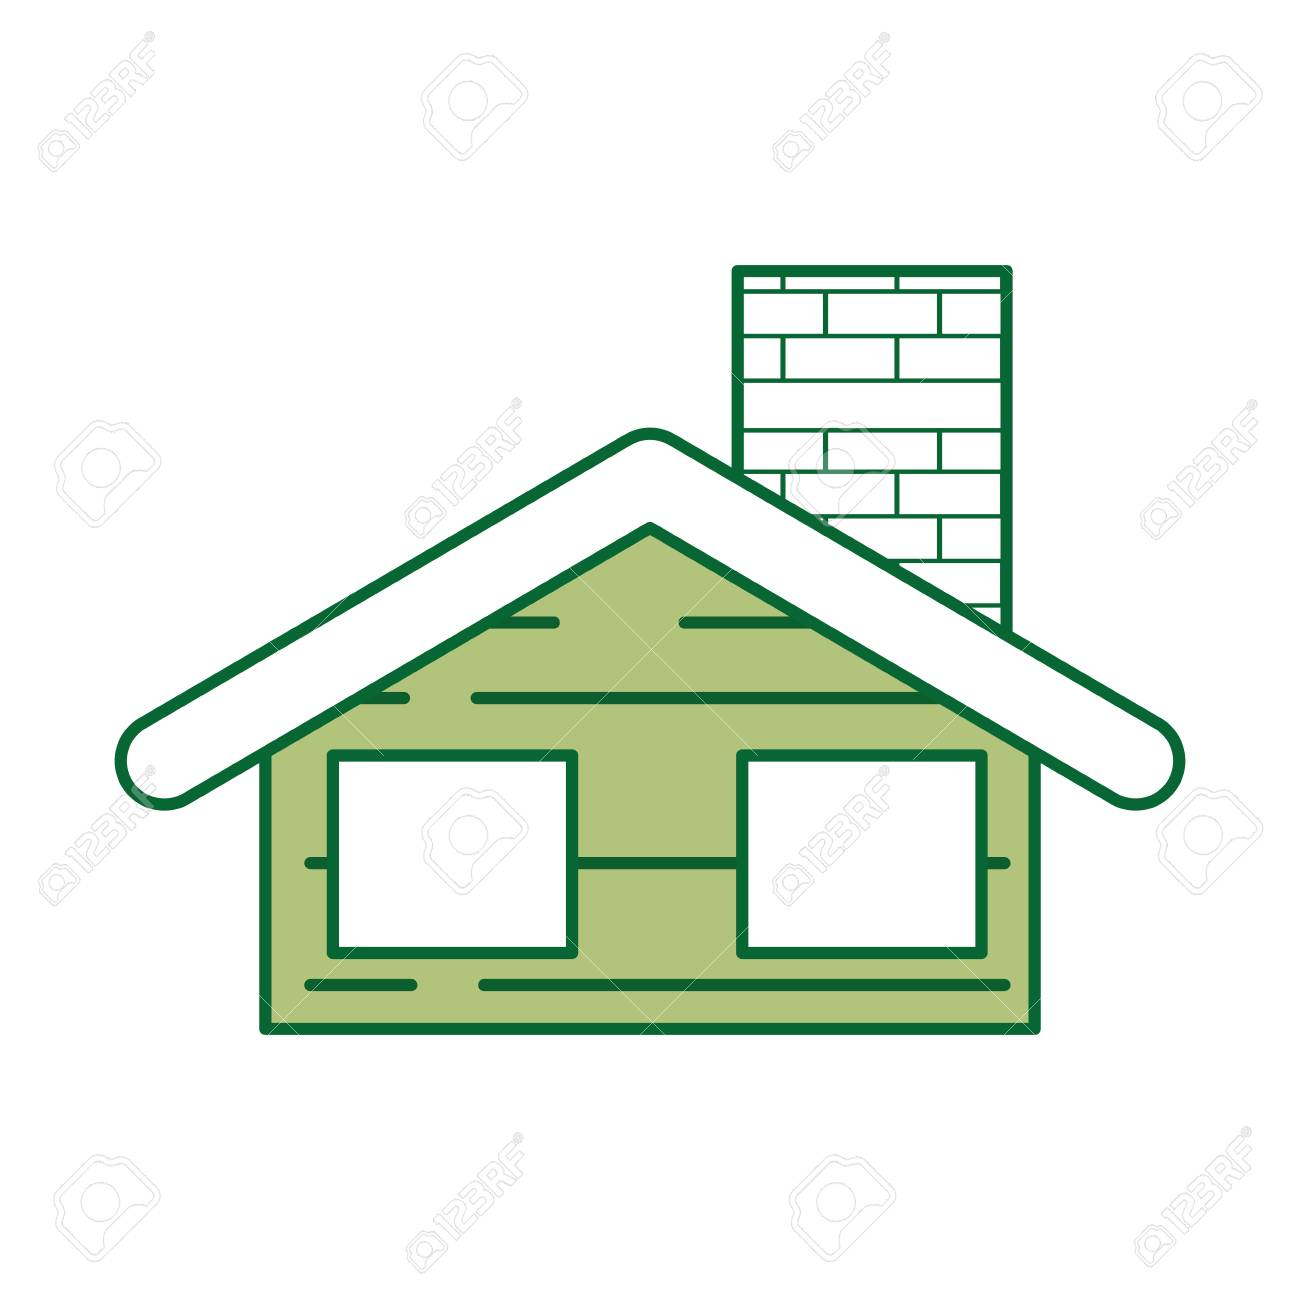 Cute House With Chimney Vector Illustration Design Royalty Free ...